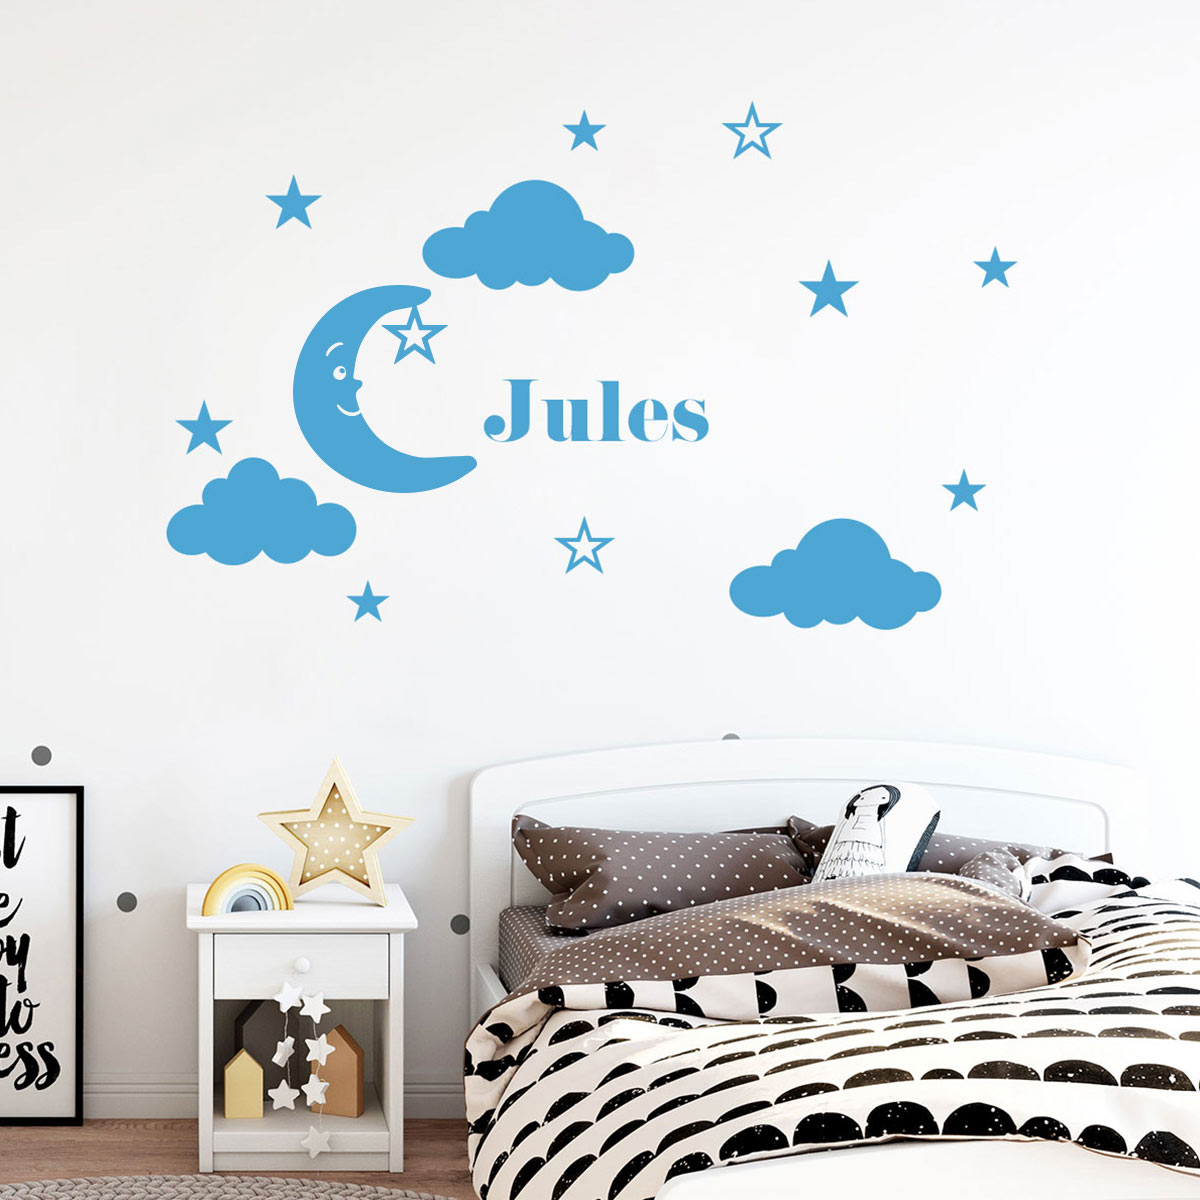 sticker pr nom personnalis lune sympathique mini stickers pr nom perso ambiance sticker. Black Bedroom Furniture Sets. Home Design Ideas